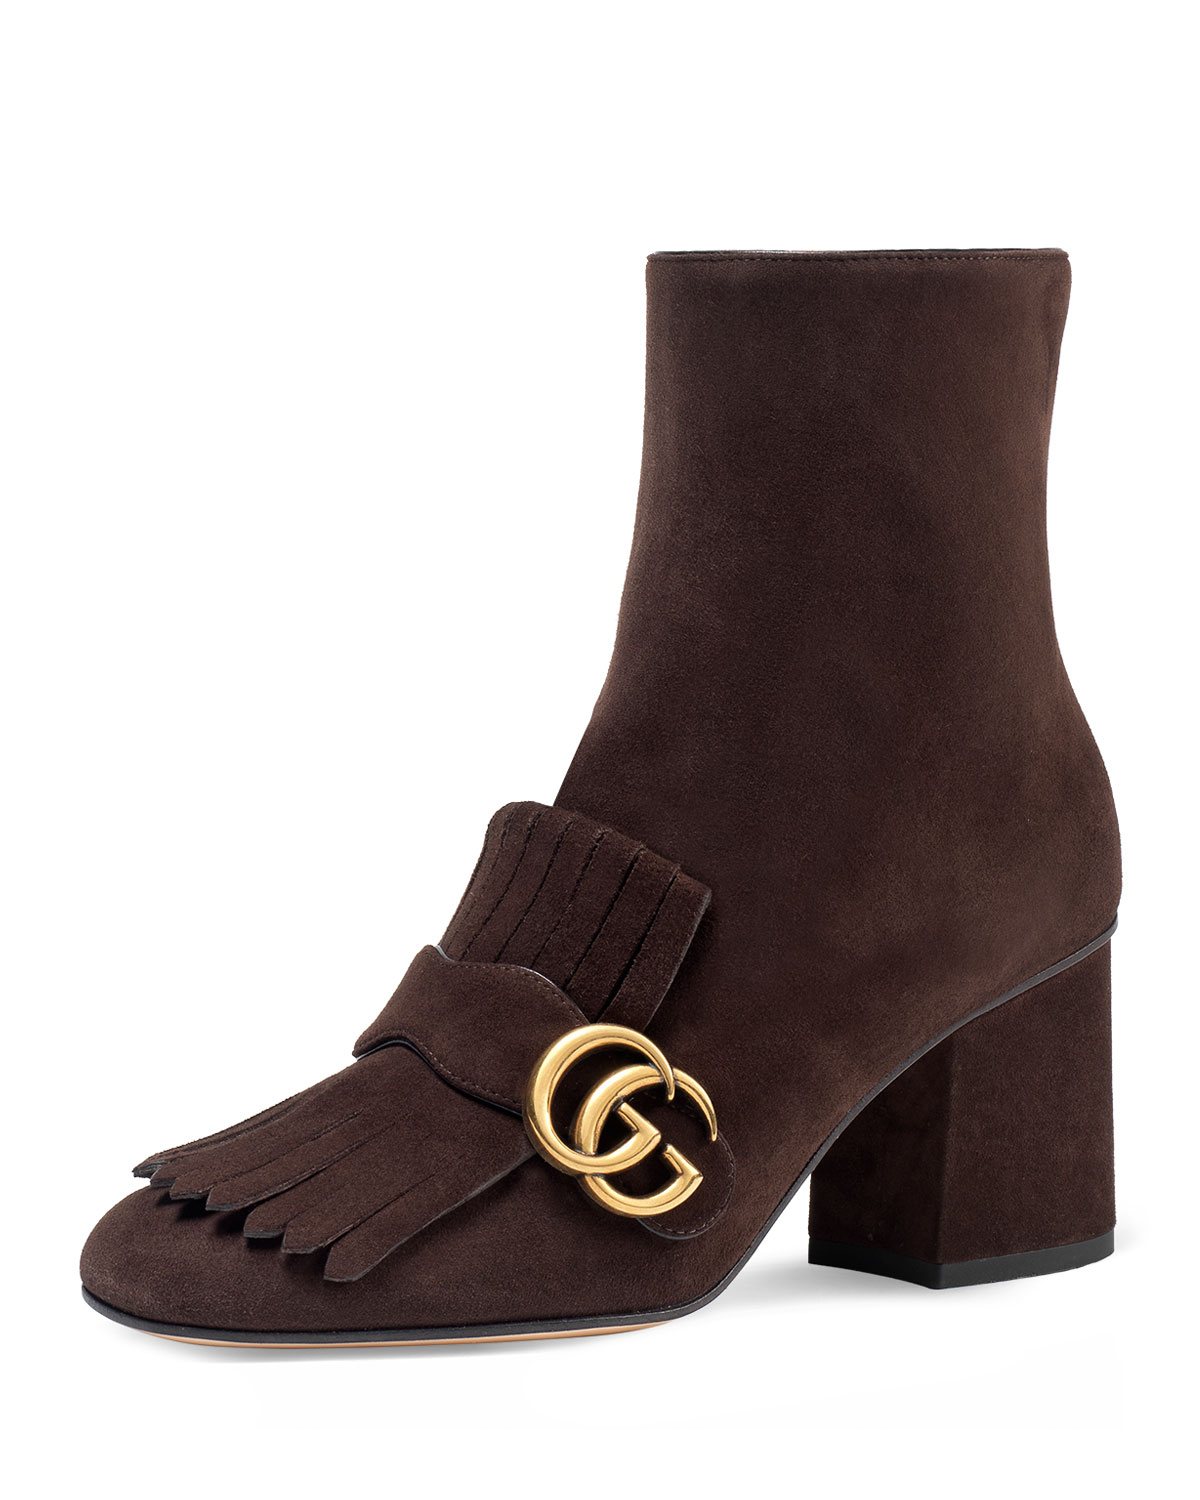 49e14d2ea Gucci Marmont Suede 75mm Ankle Boots, Brown | Neiman Marcus